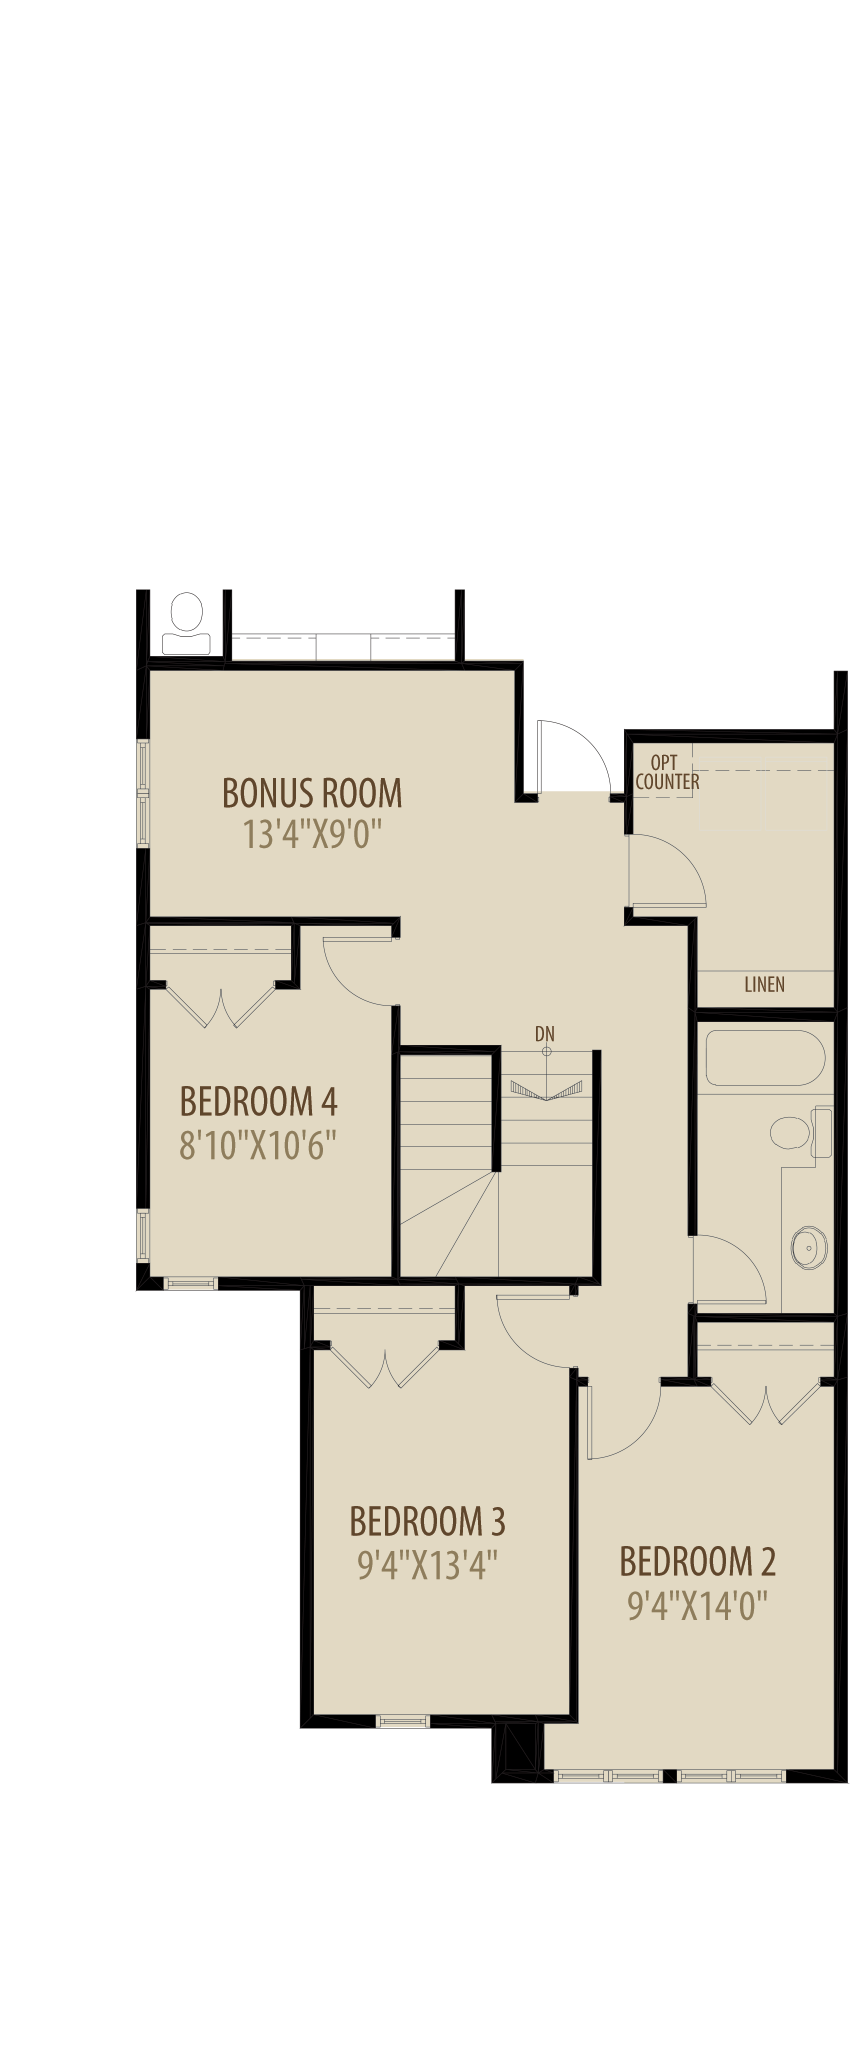 4Th Bedroom Revised (Adds 100 Sq Ft)